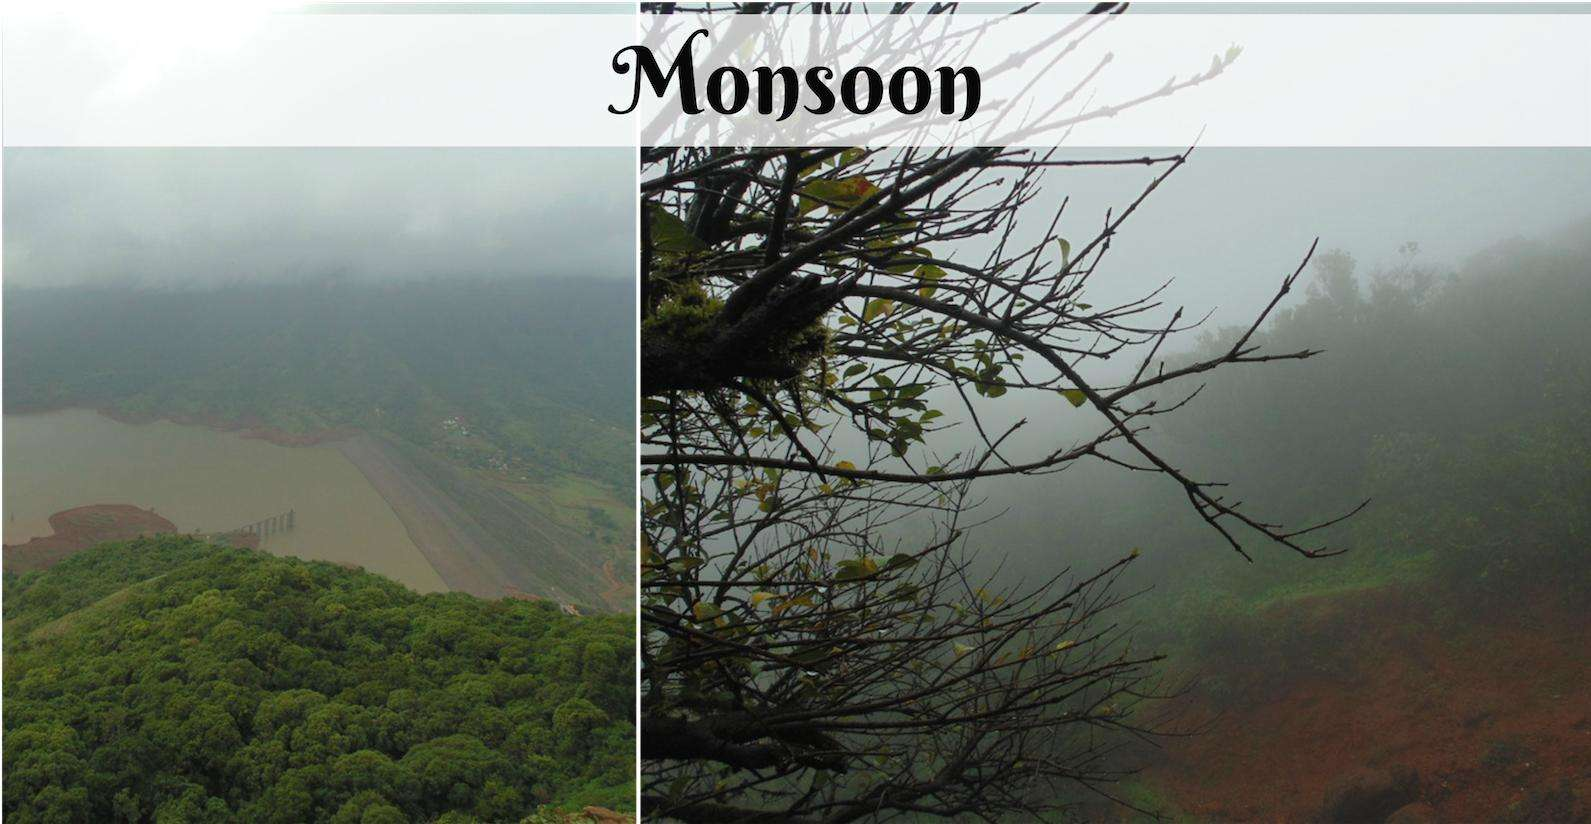 mahabaleshwar-in-monsoon.jpg